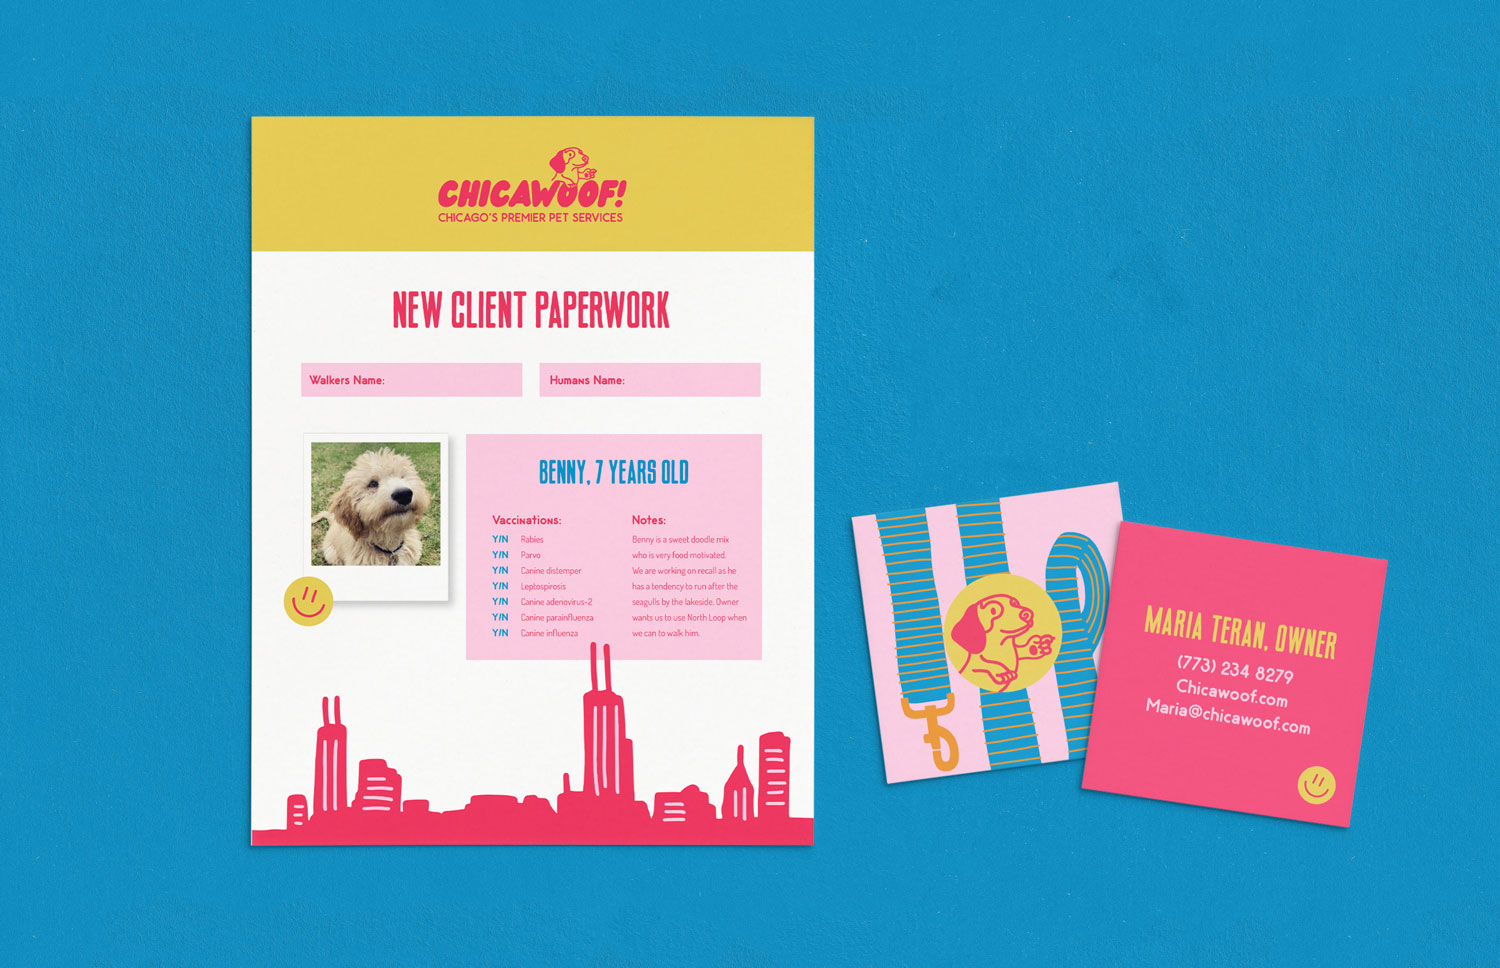 pink and yellow Chica woof client paperwork template